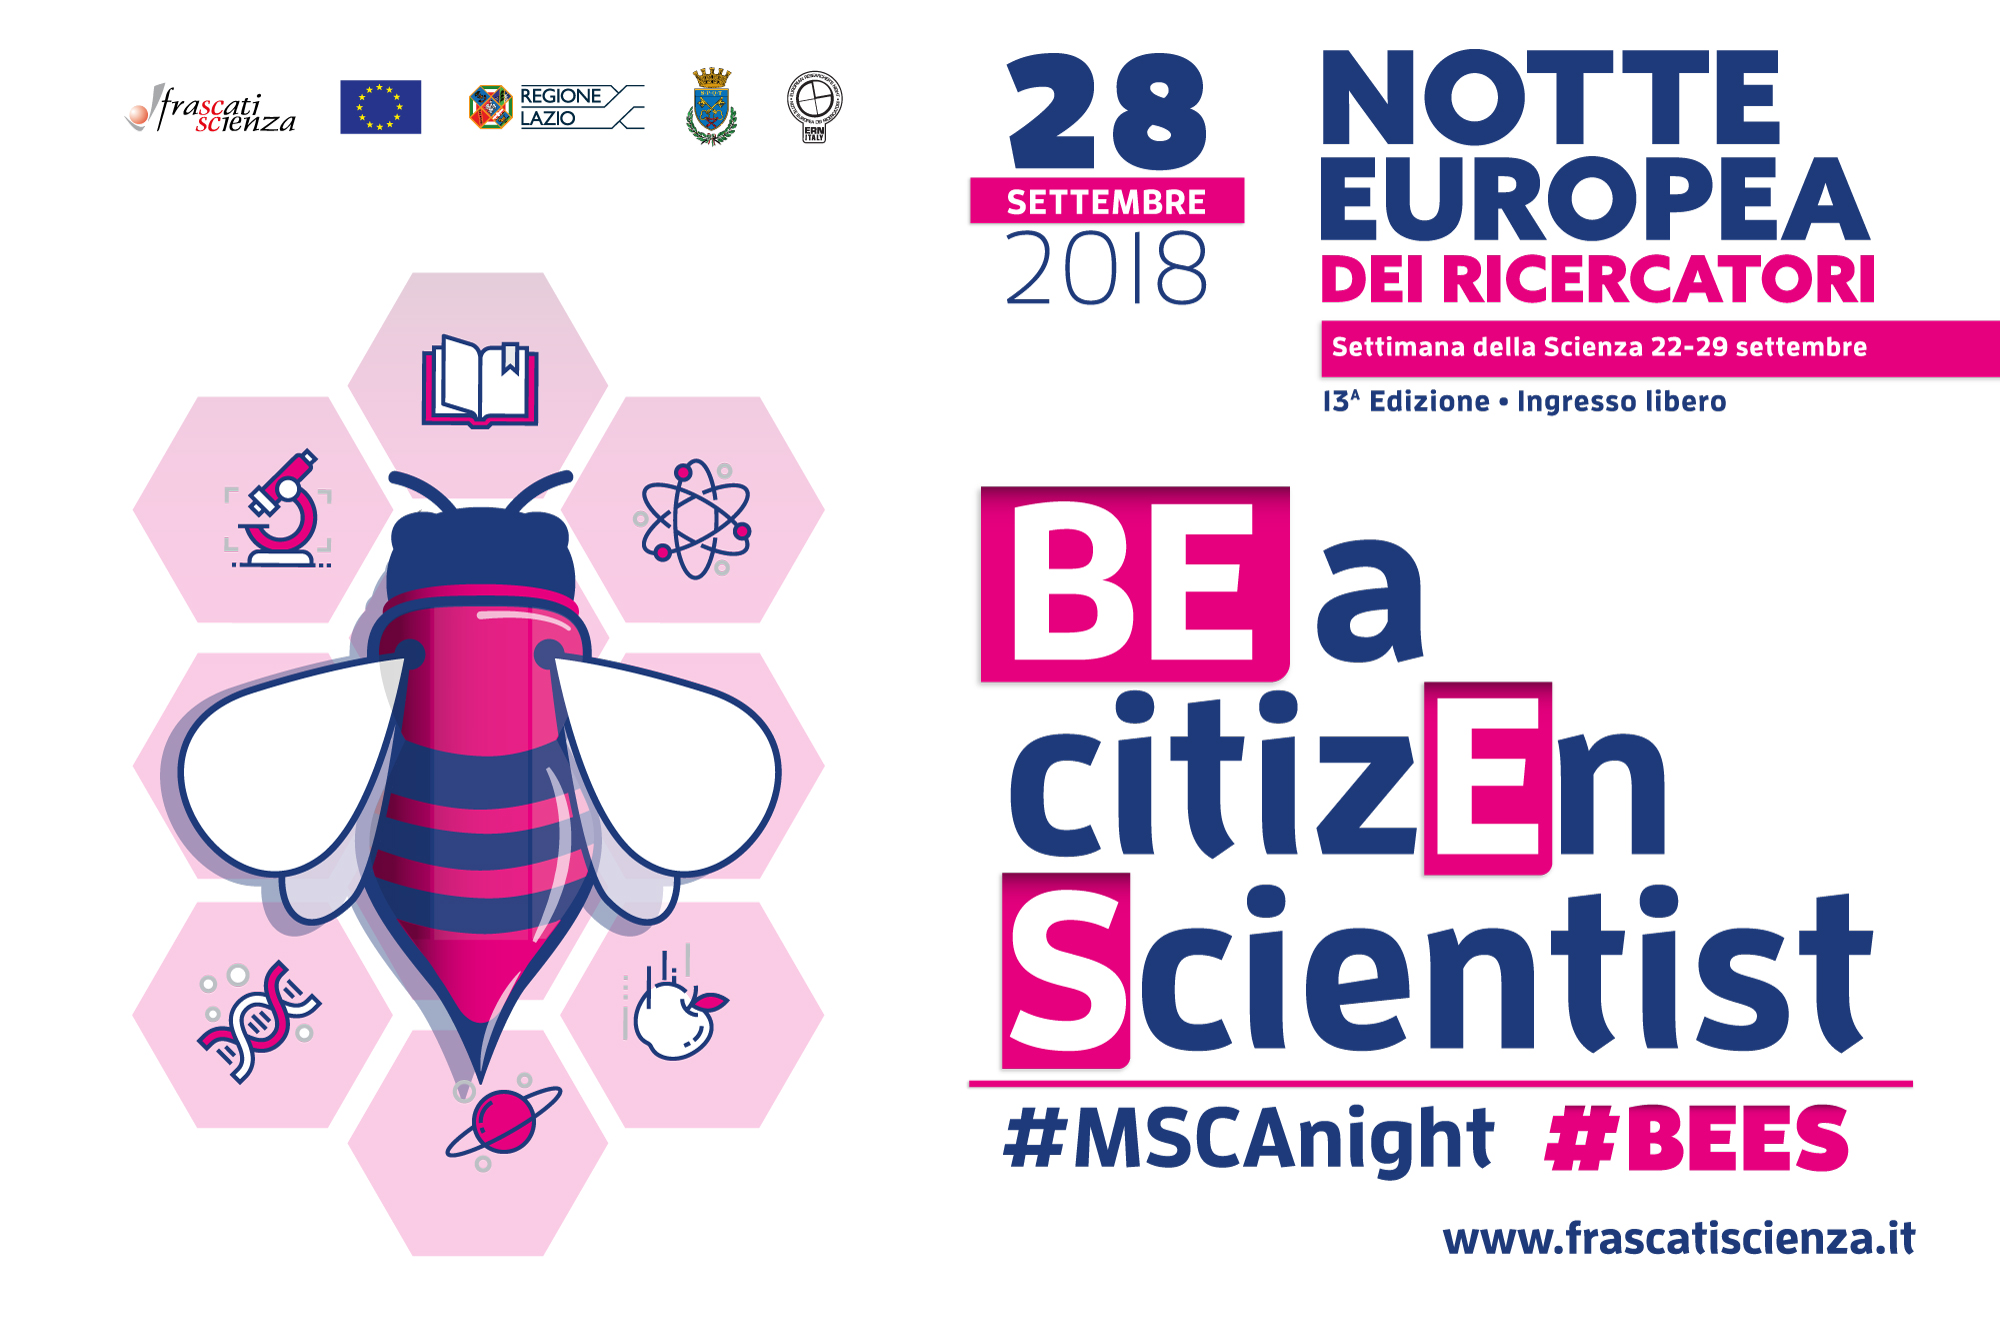 BEES_Frascati_Scienza visual